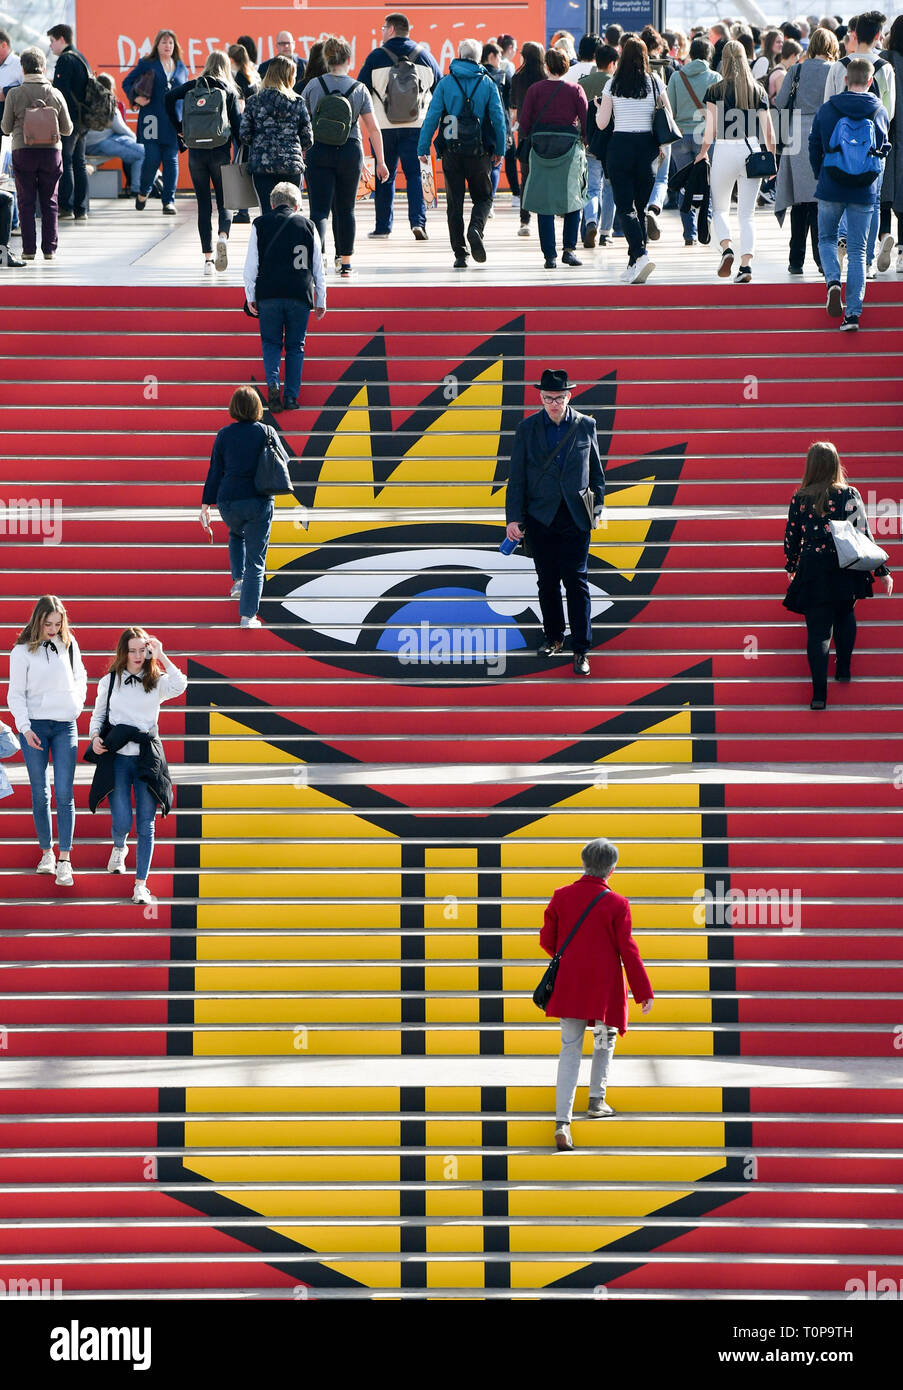 Leipzig, Germany. 21st Mar, 2019. Visitors walk up a staircase in the glass hall, where the logo of the Book Fair can be seen. Until 24.03.2019 about 2600 exhibitors will present themselves on the exhibition grounds. At the same time the festival 'Leipzig reads' invites to numerous readings. The guest country of the Book Fair this year is the Czech Republic. Credit: Jens Kalaene/dpa-Zentralbild/dpa/Alamy Live News - Stock Image